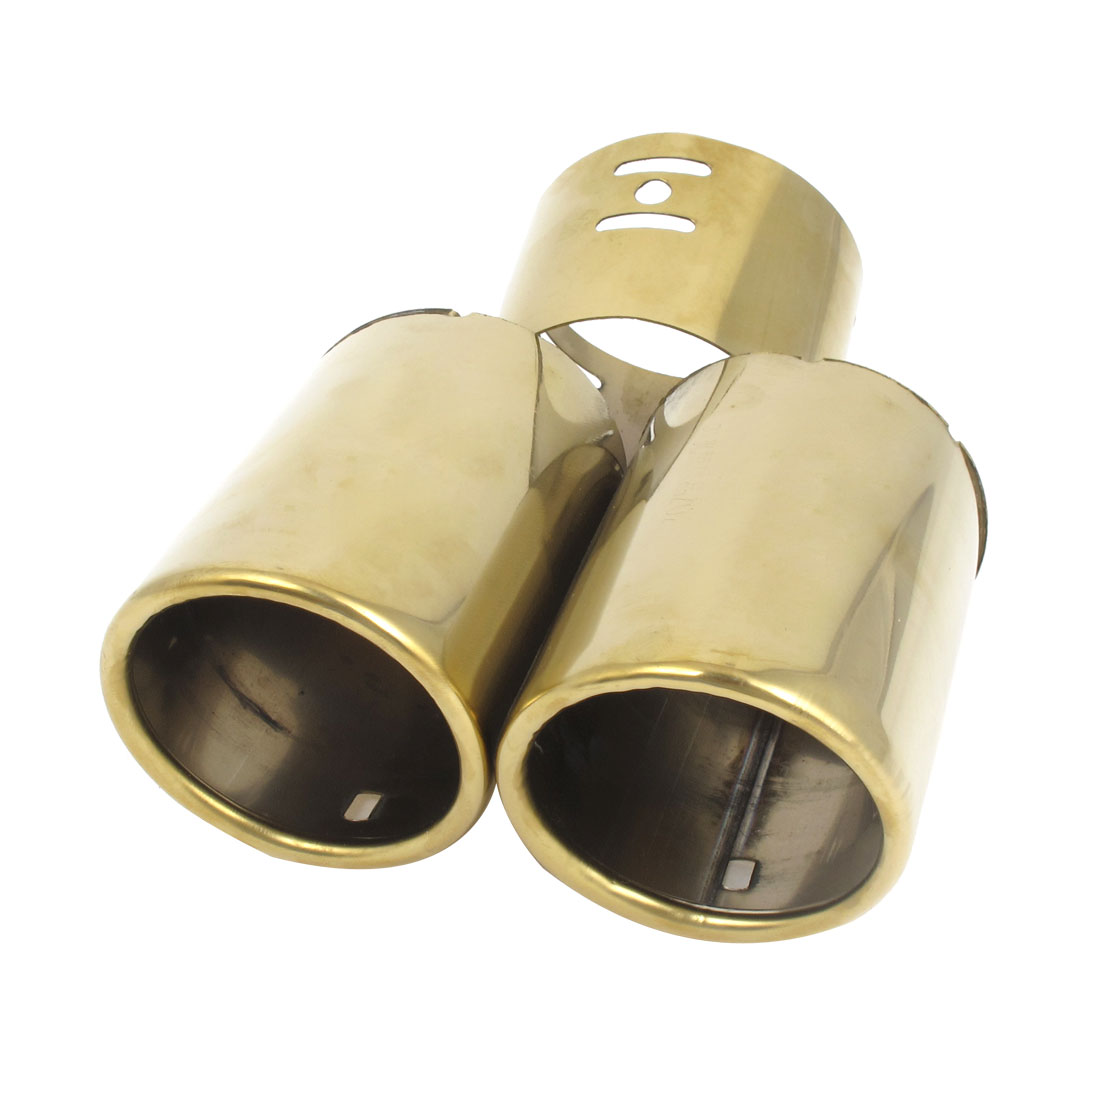 60mm Inlet Dia Dual Outlet Exhaust Tips Muffler Tipe Tail Tip for ELANTRA